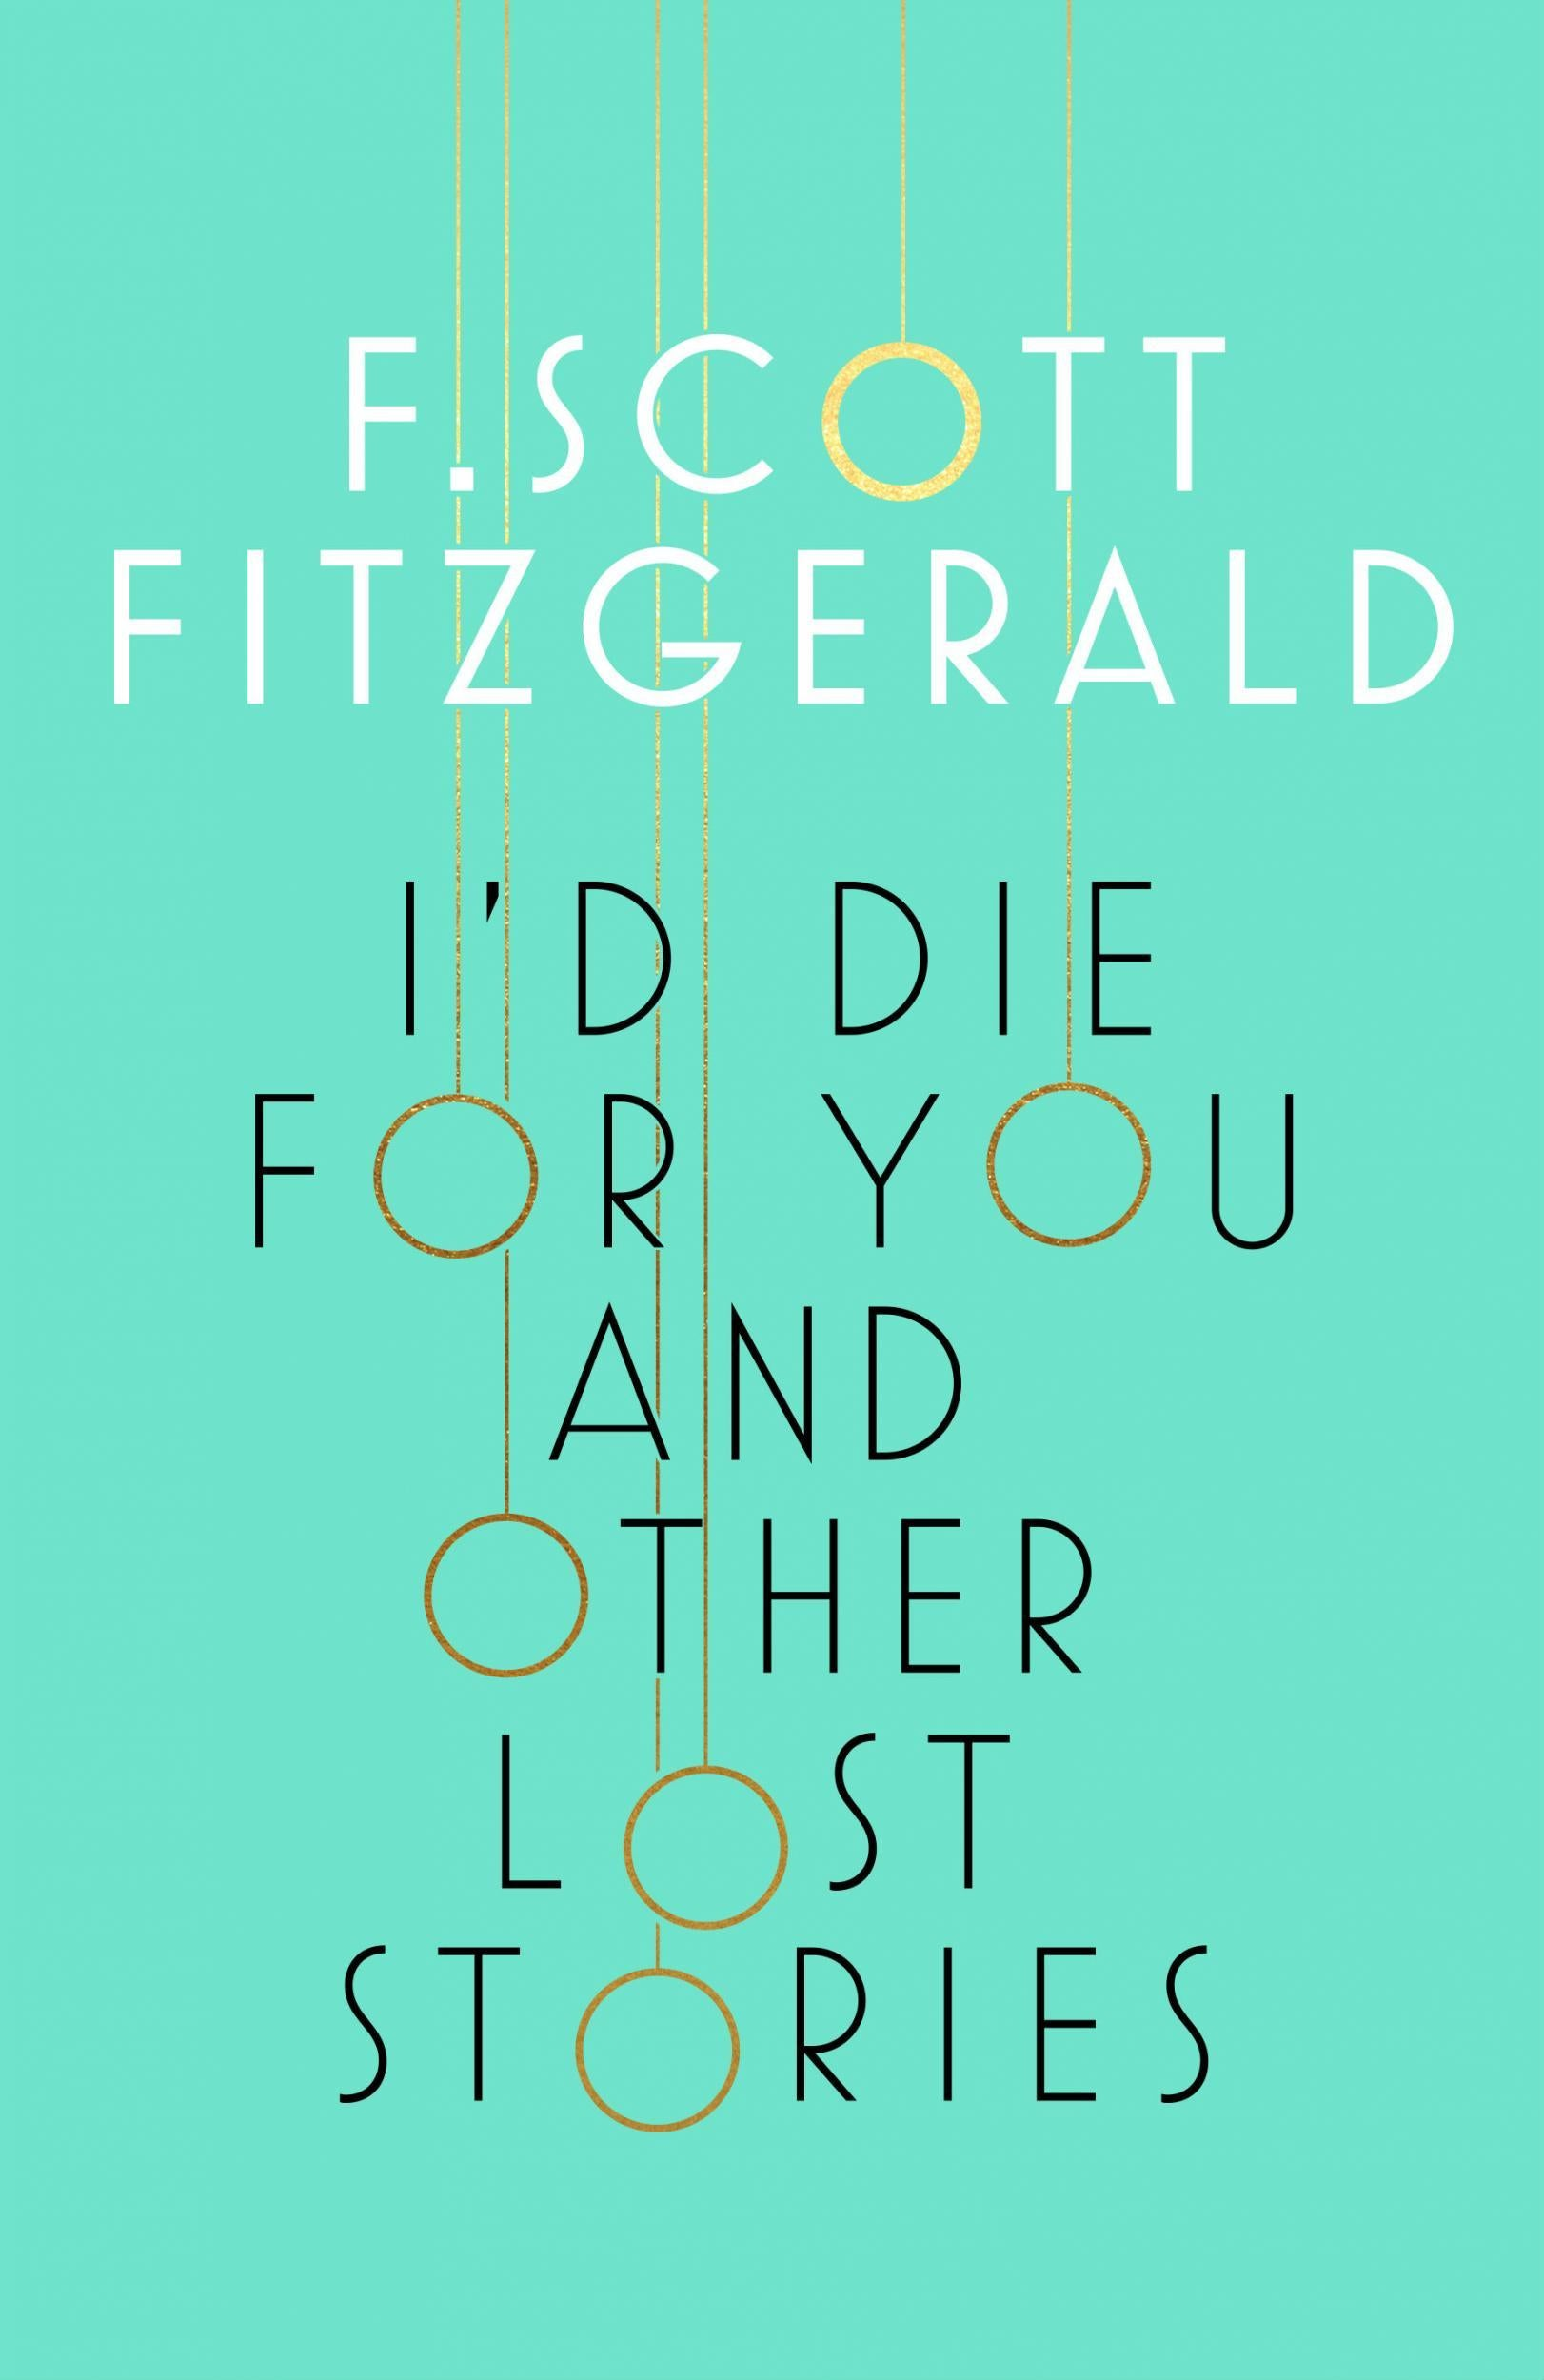 I'd Die For You And Other Lost Stories By F Scott Fitzgerald, Book Review:  There Are Bleak Currents, But What Really Makes An Impression Is The Humour   The